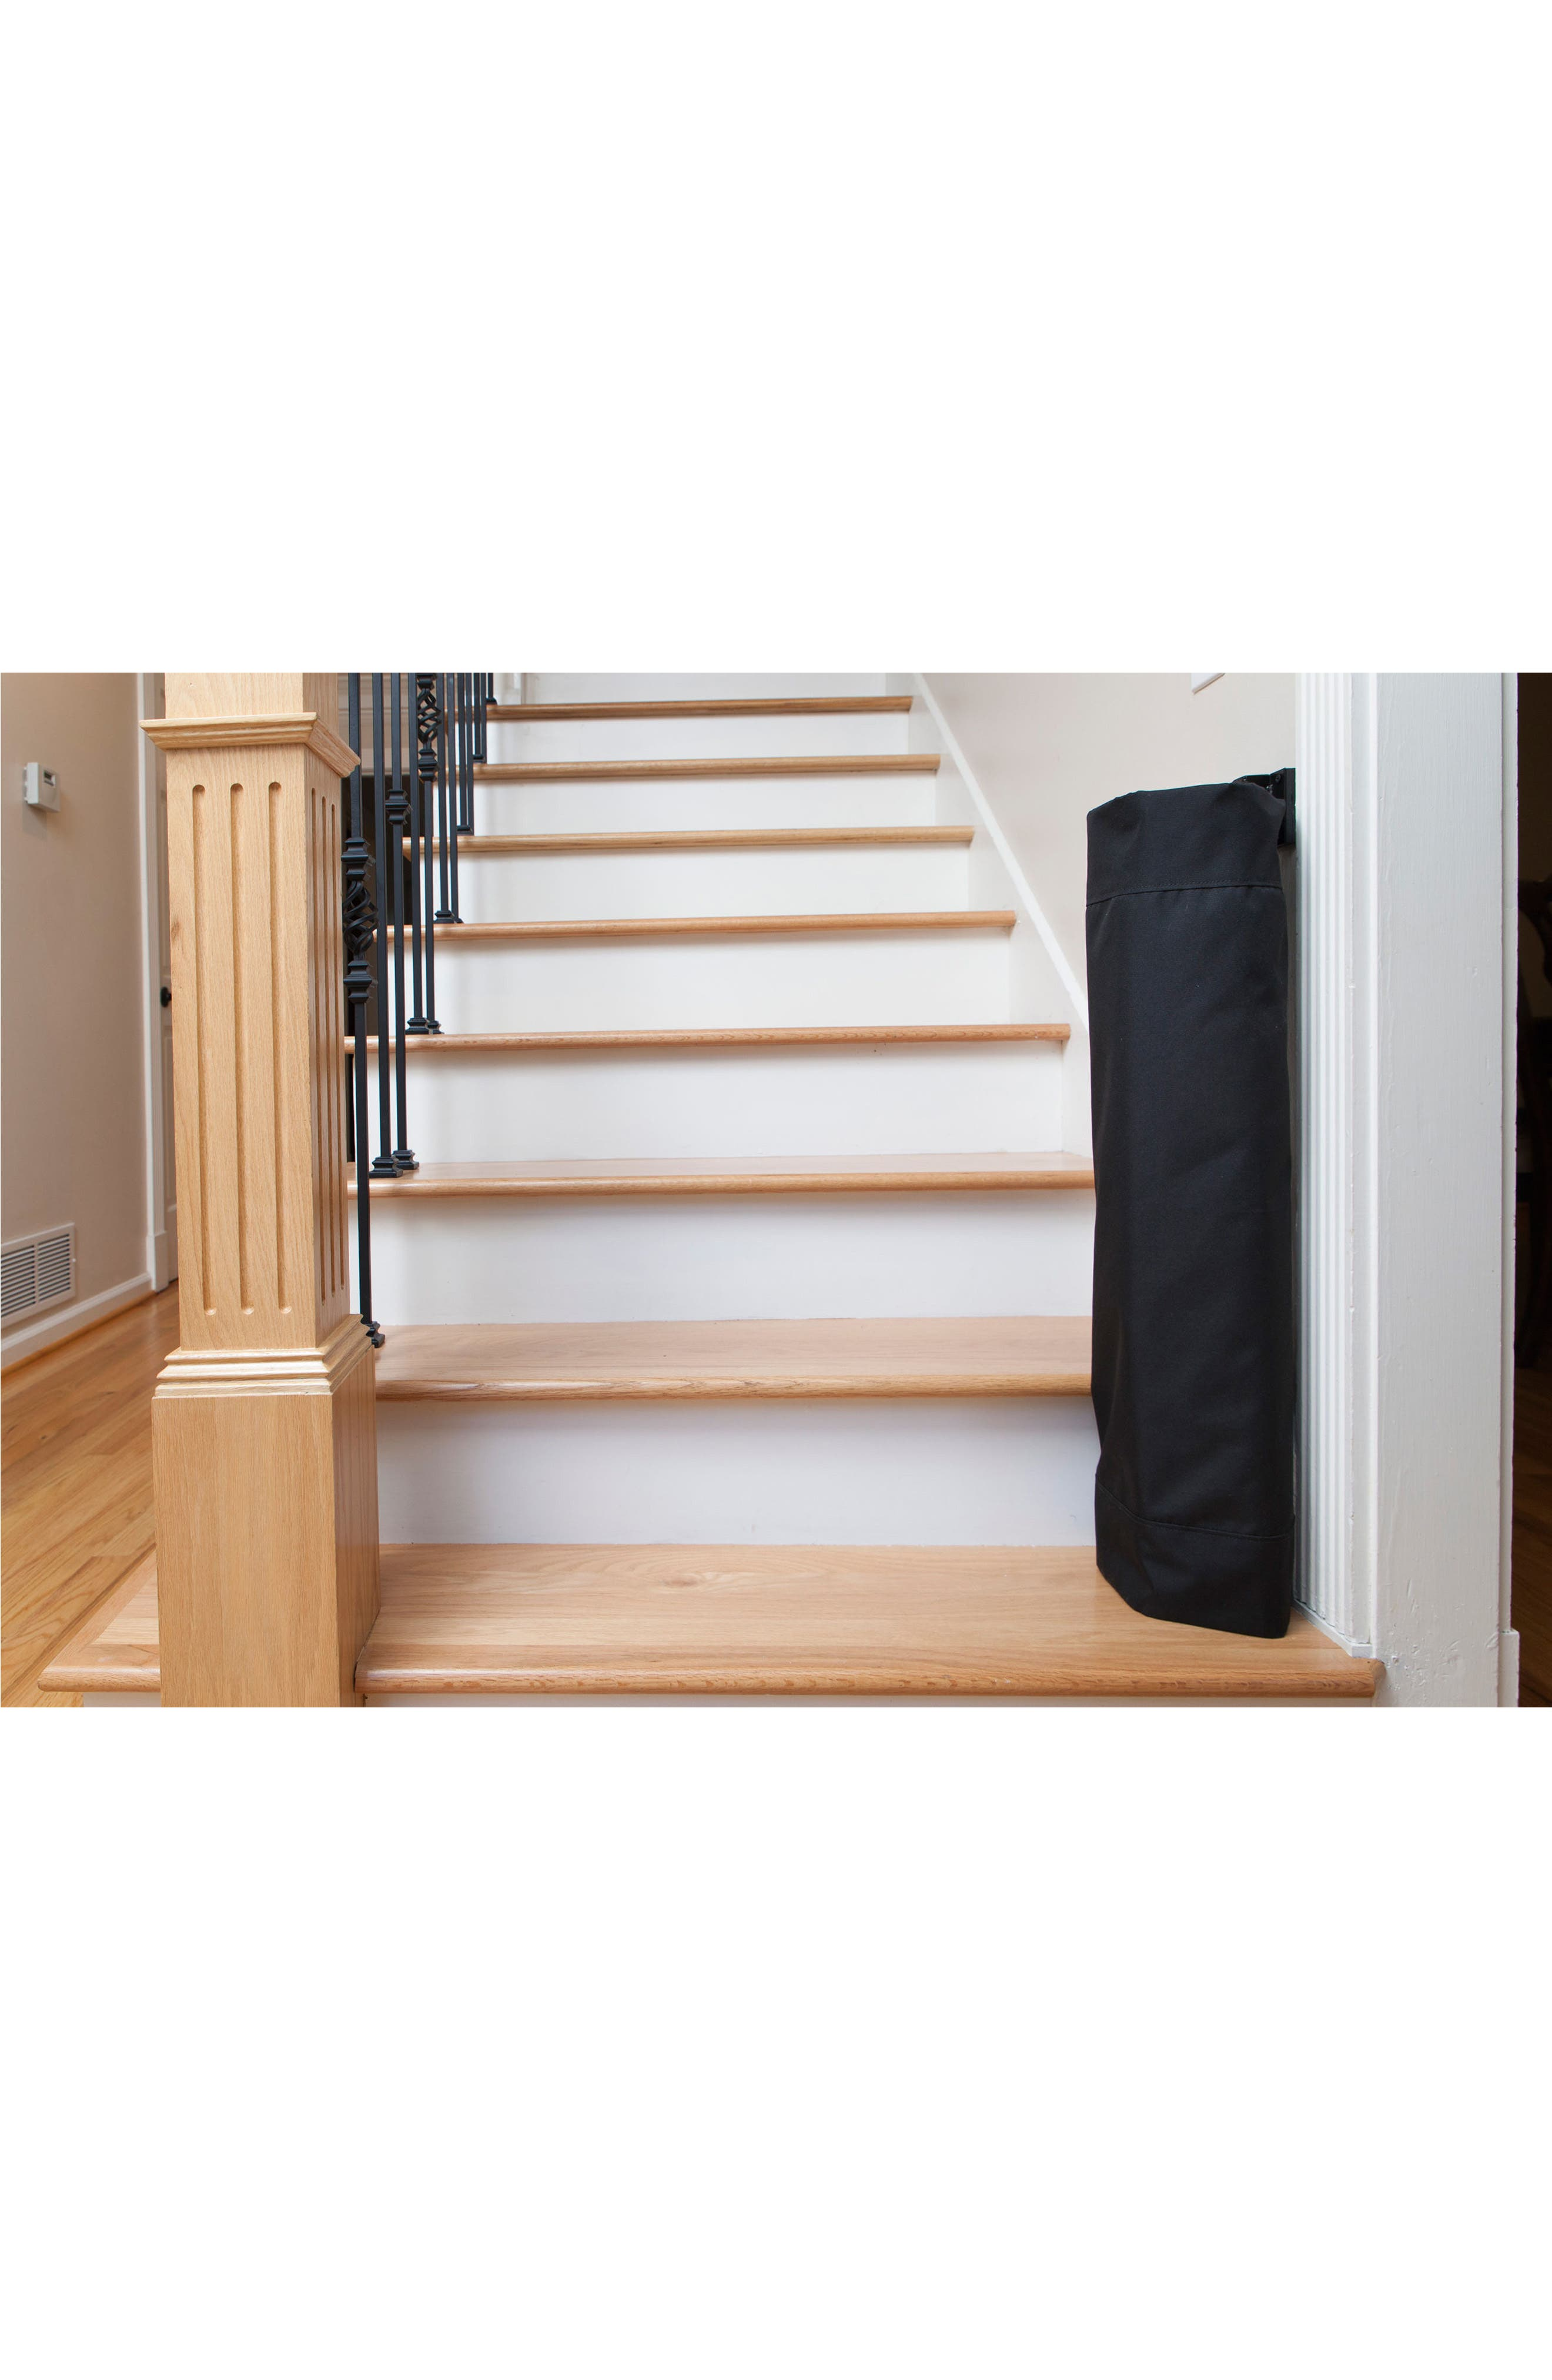 Wall to Banister Indoor Outdoor Safety Gate,                             Alternate thumbnail 7, color,                             002